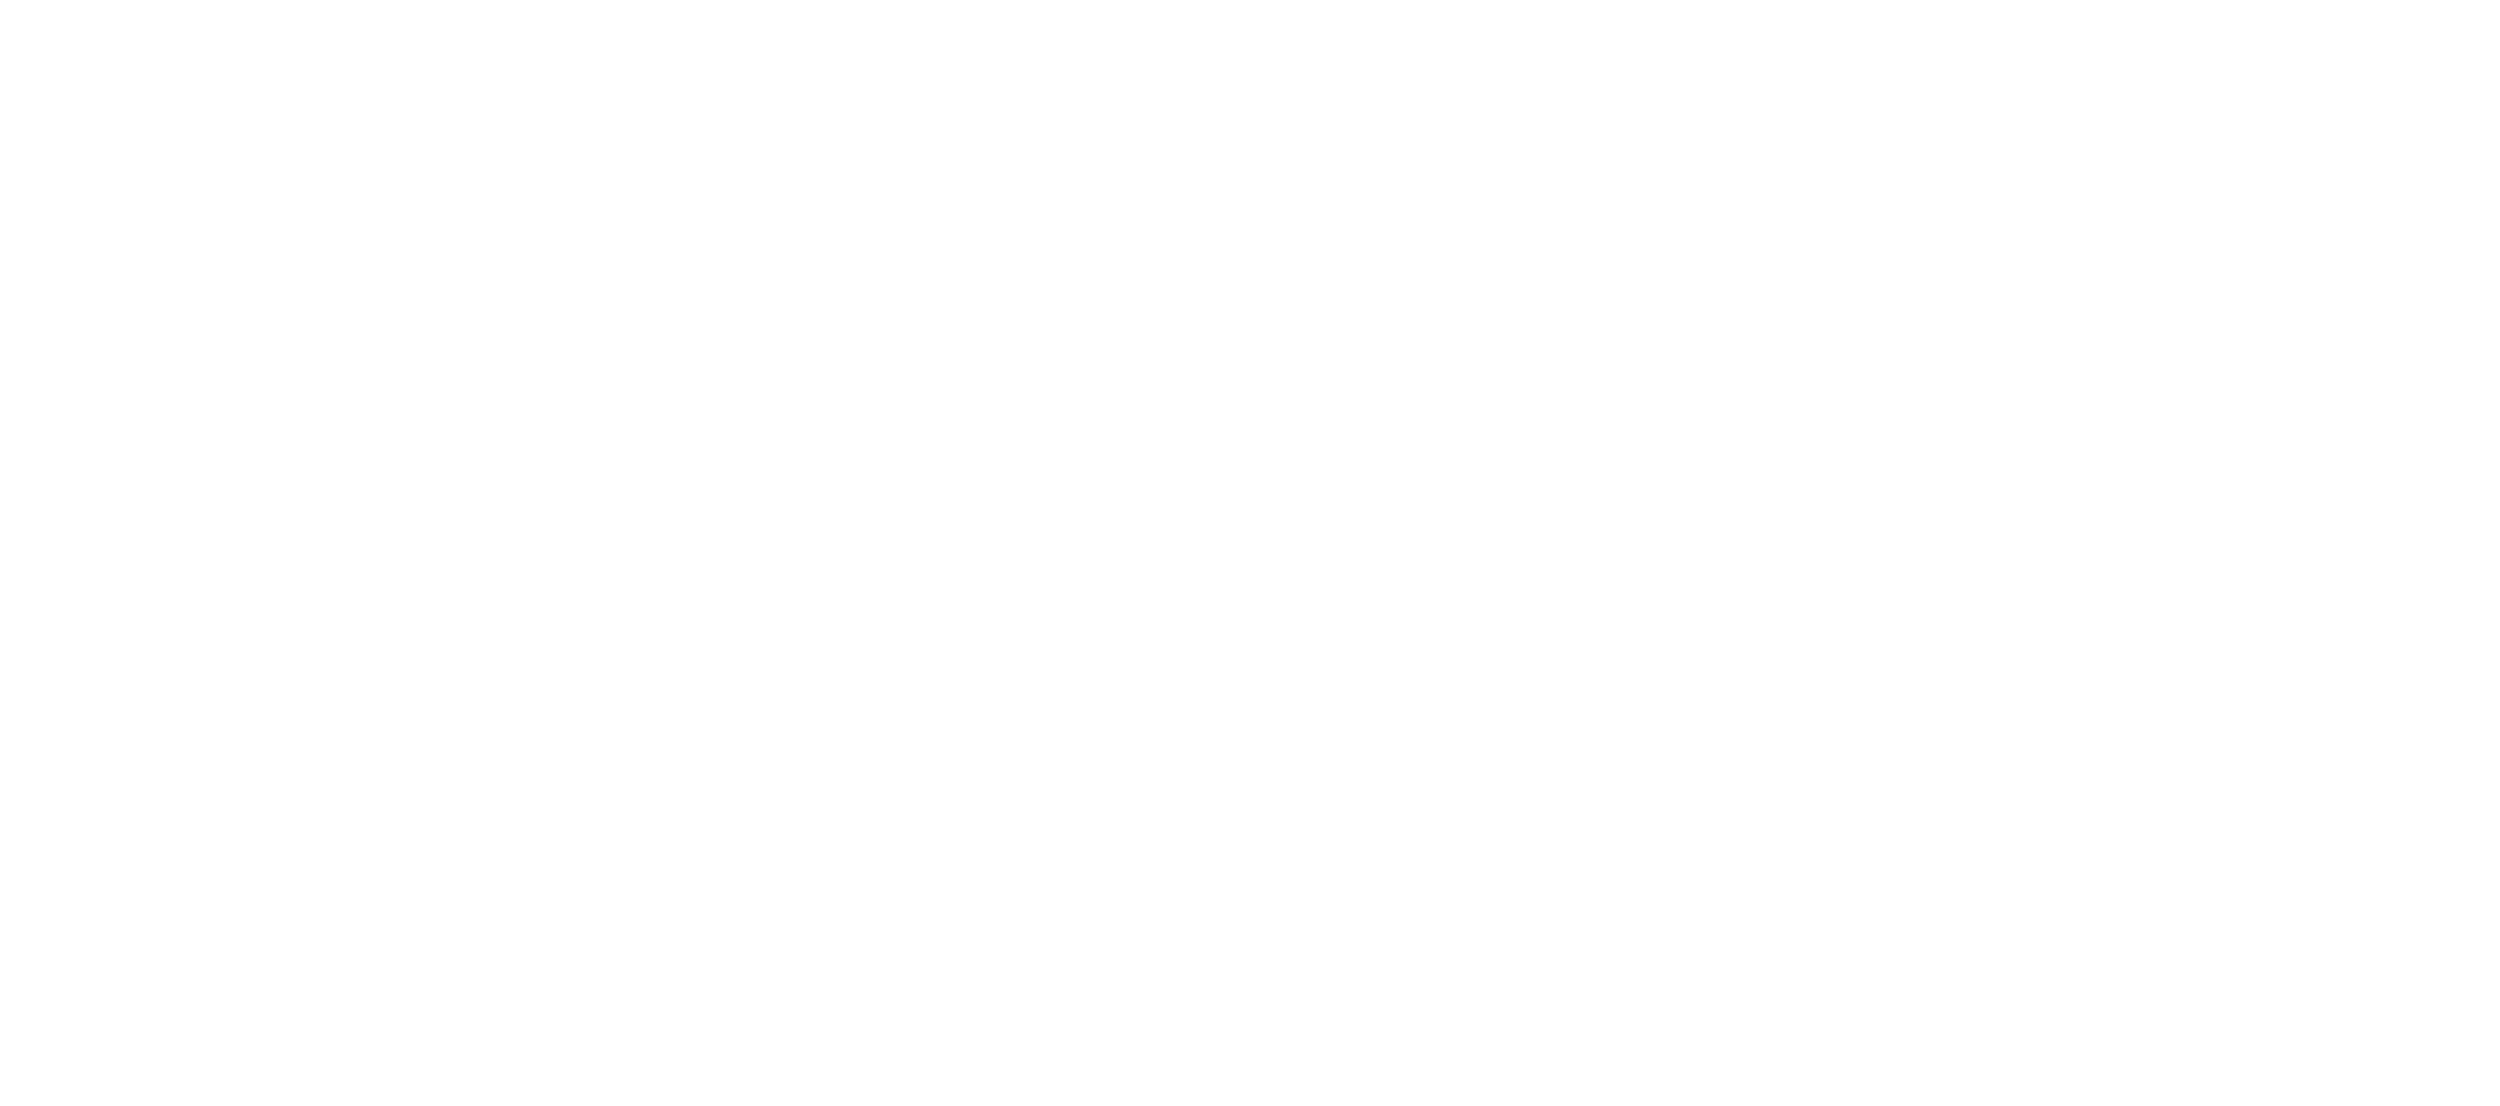 Ginny Filer Photography Branding | By Casi Long Design.png